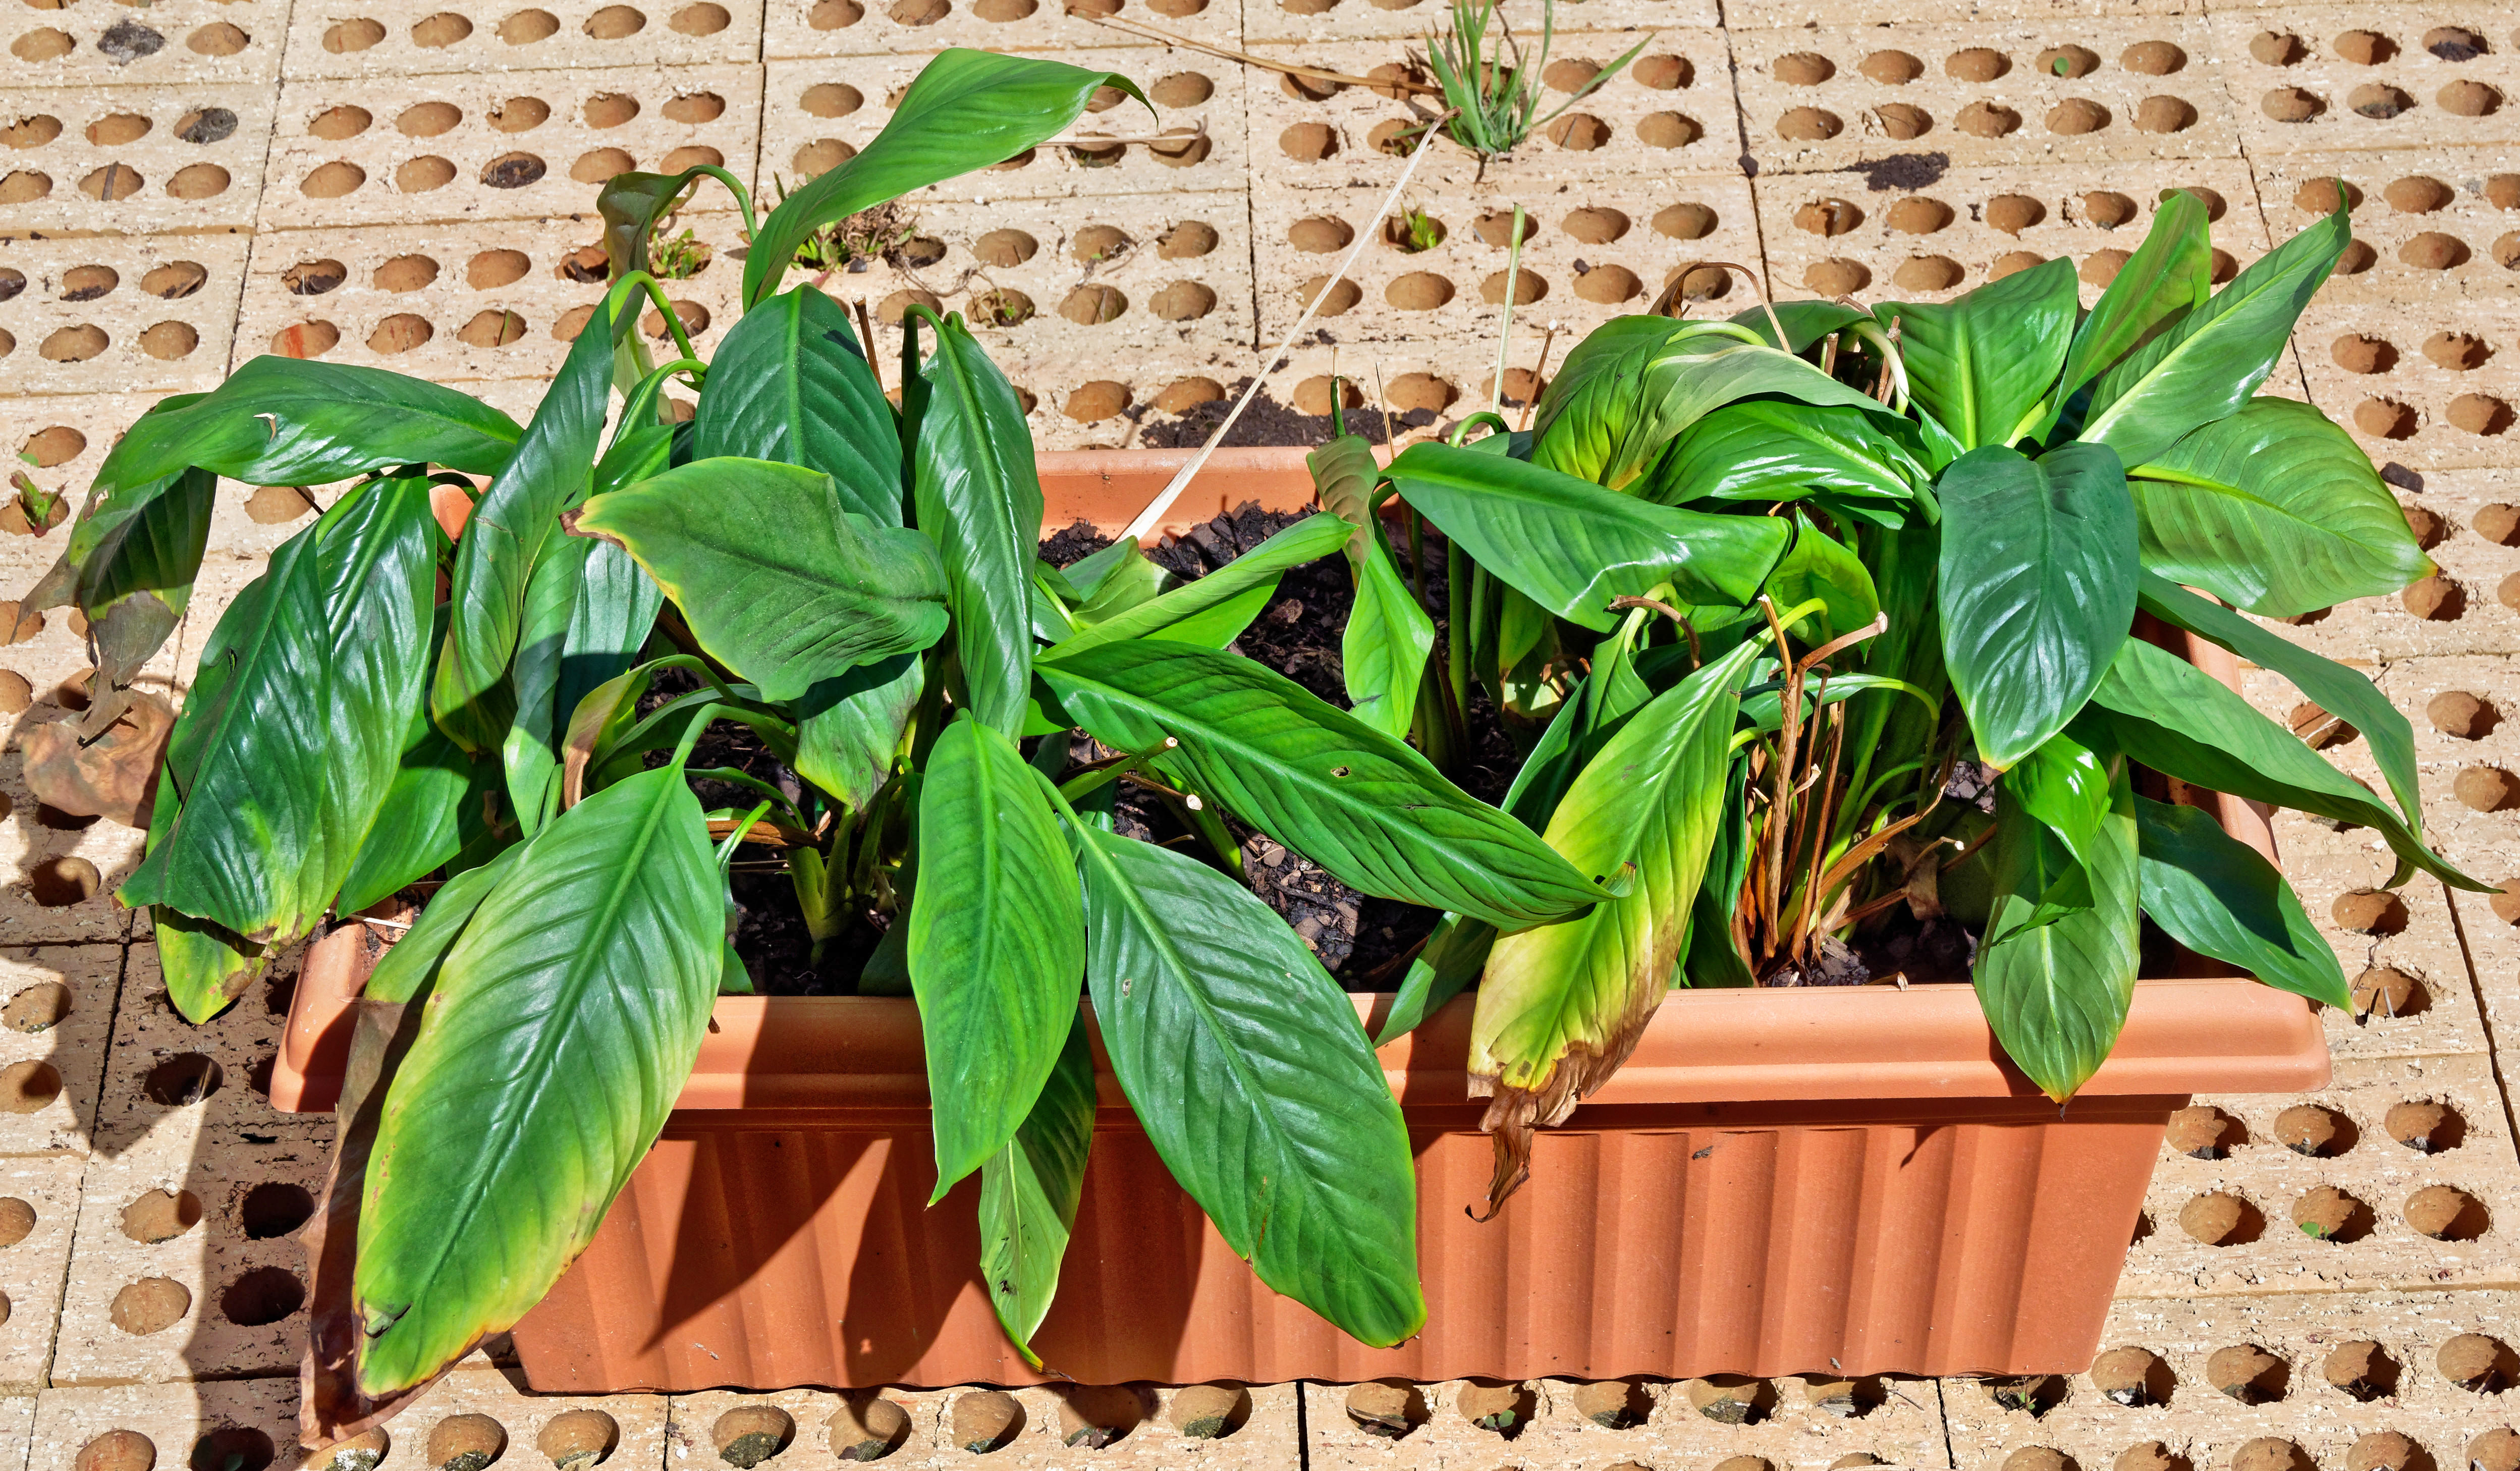 This should be Spathiphyllum-1.jpeg.  Is it missing?